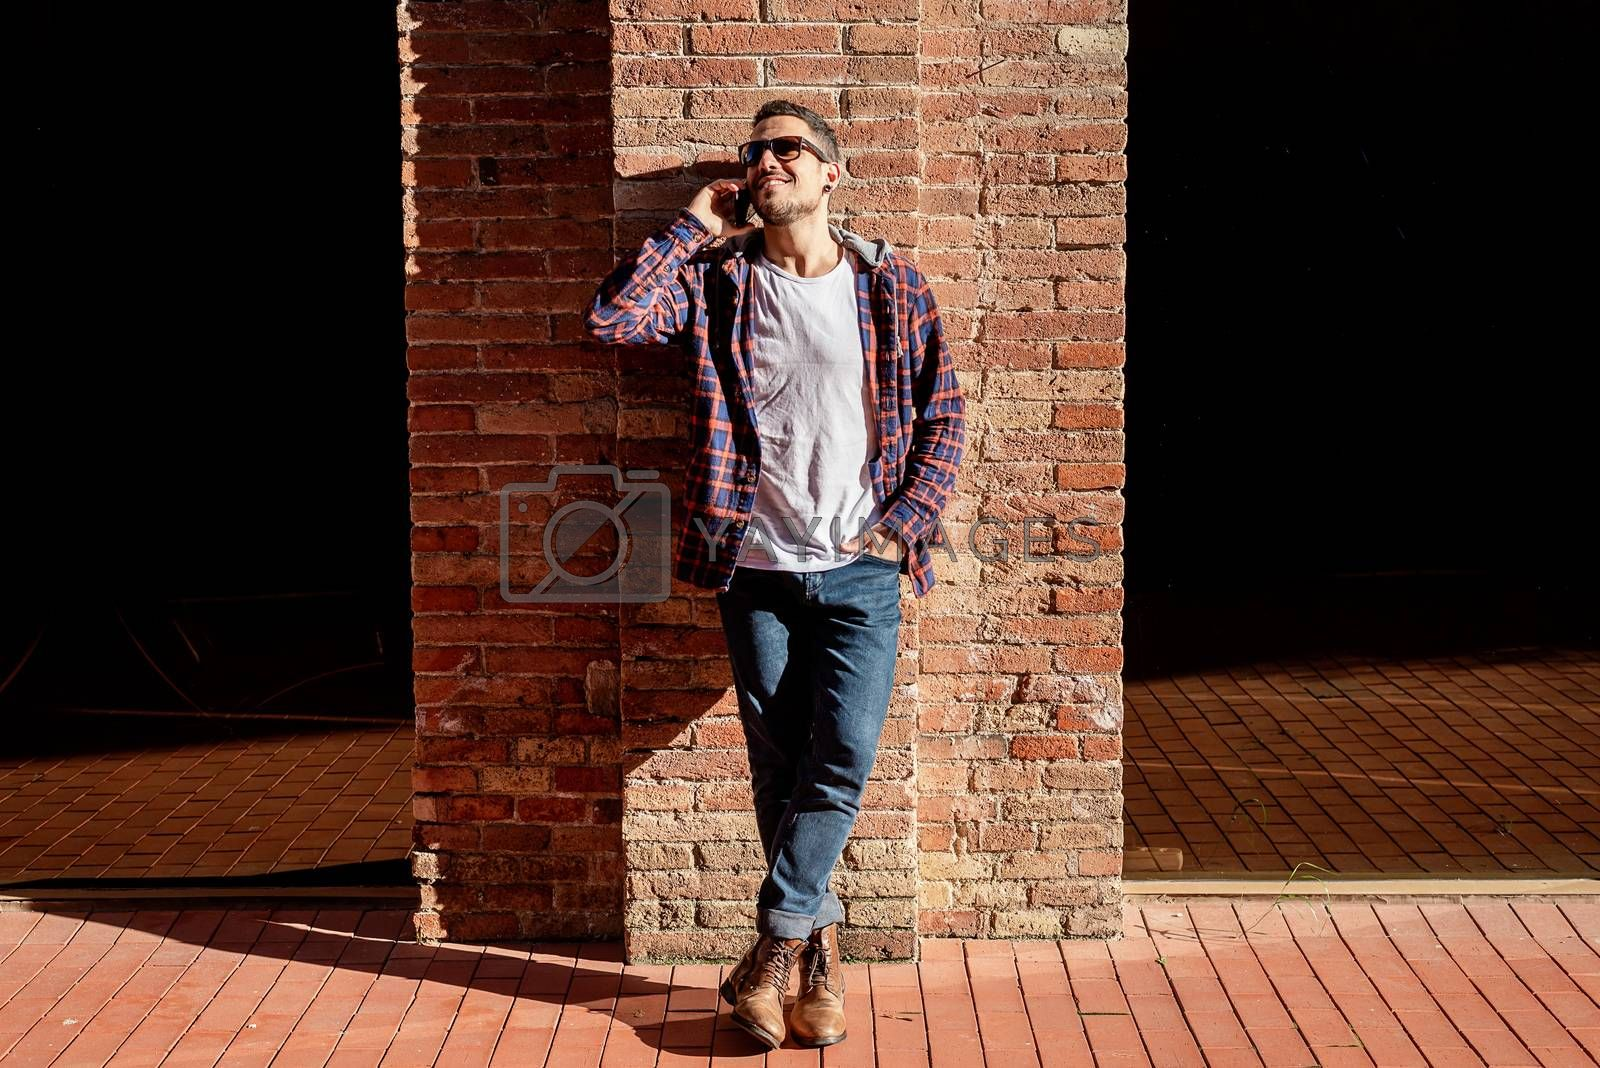 Young bearded man leaning on a bricked wall wearing sunglasses while using a smartphone outdoors. by raferto1973